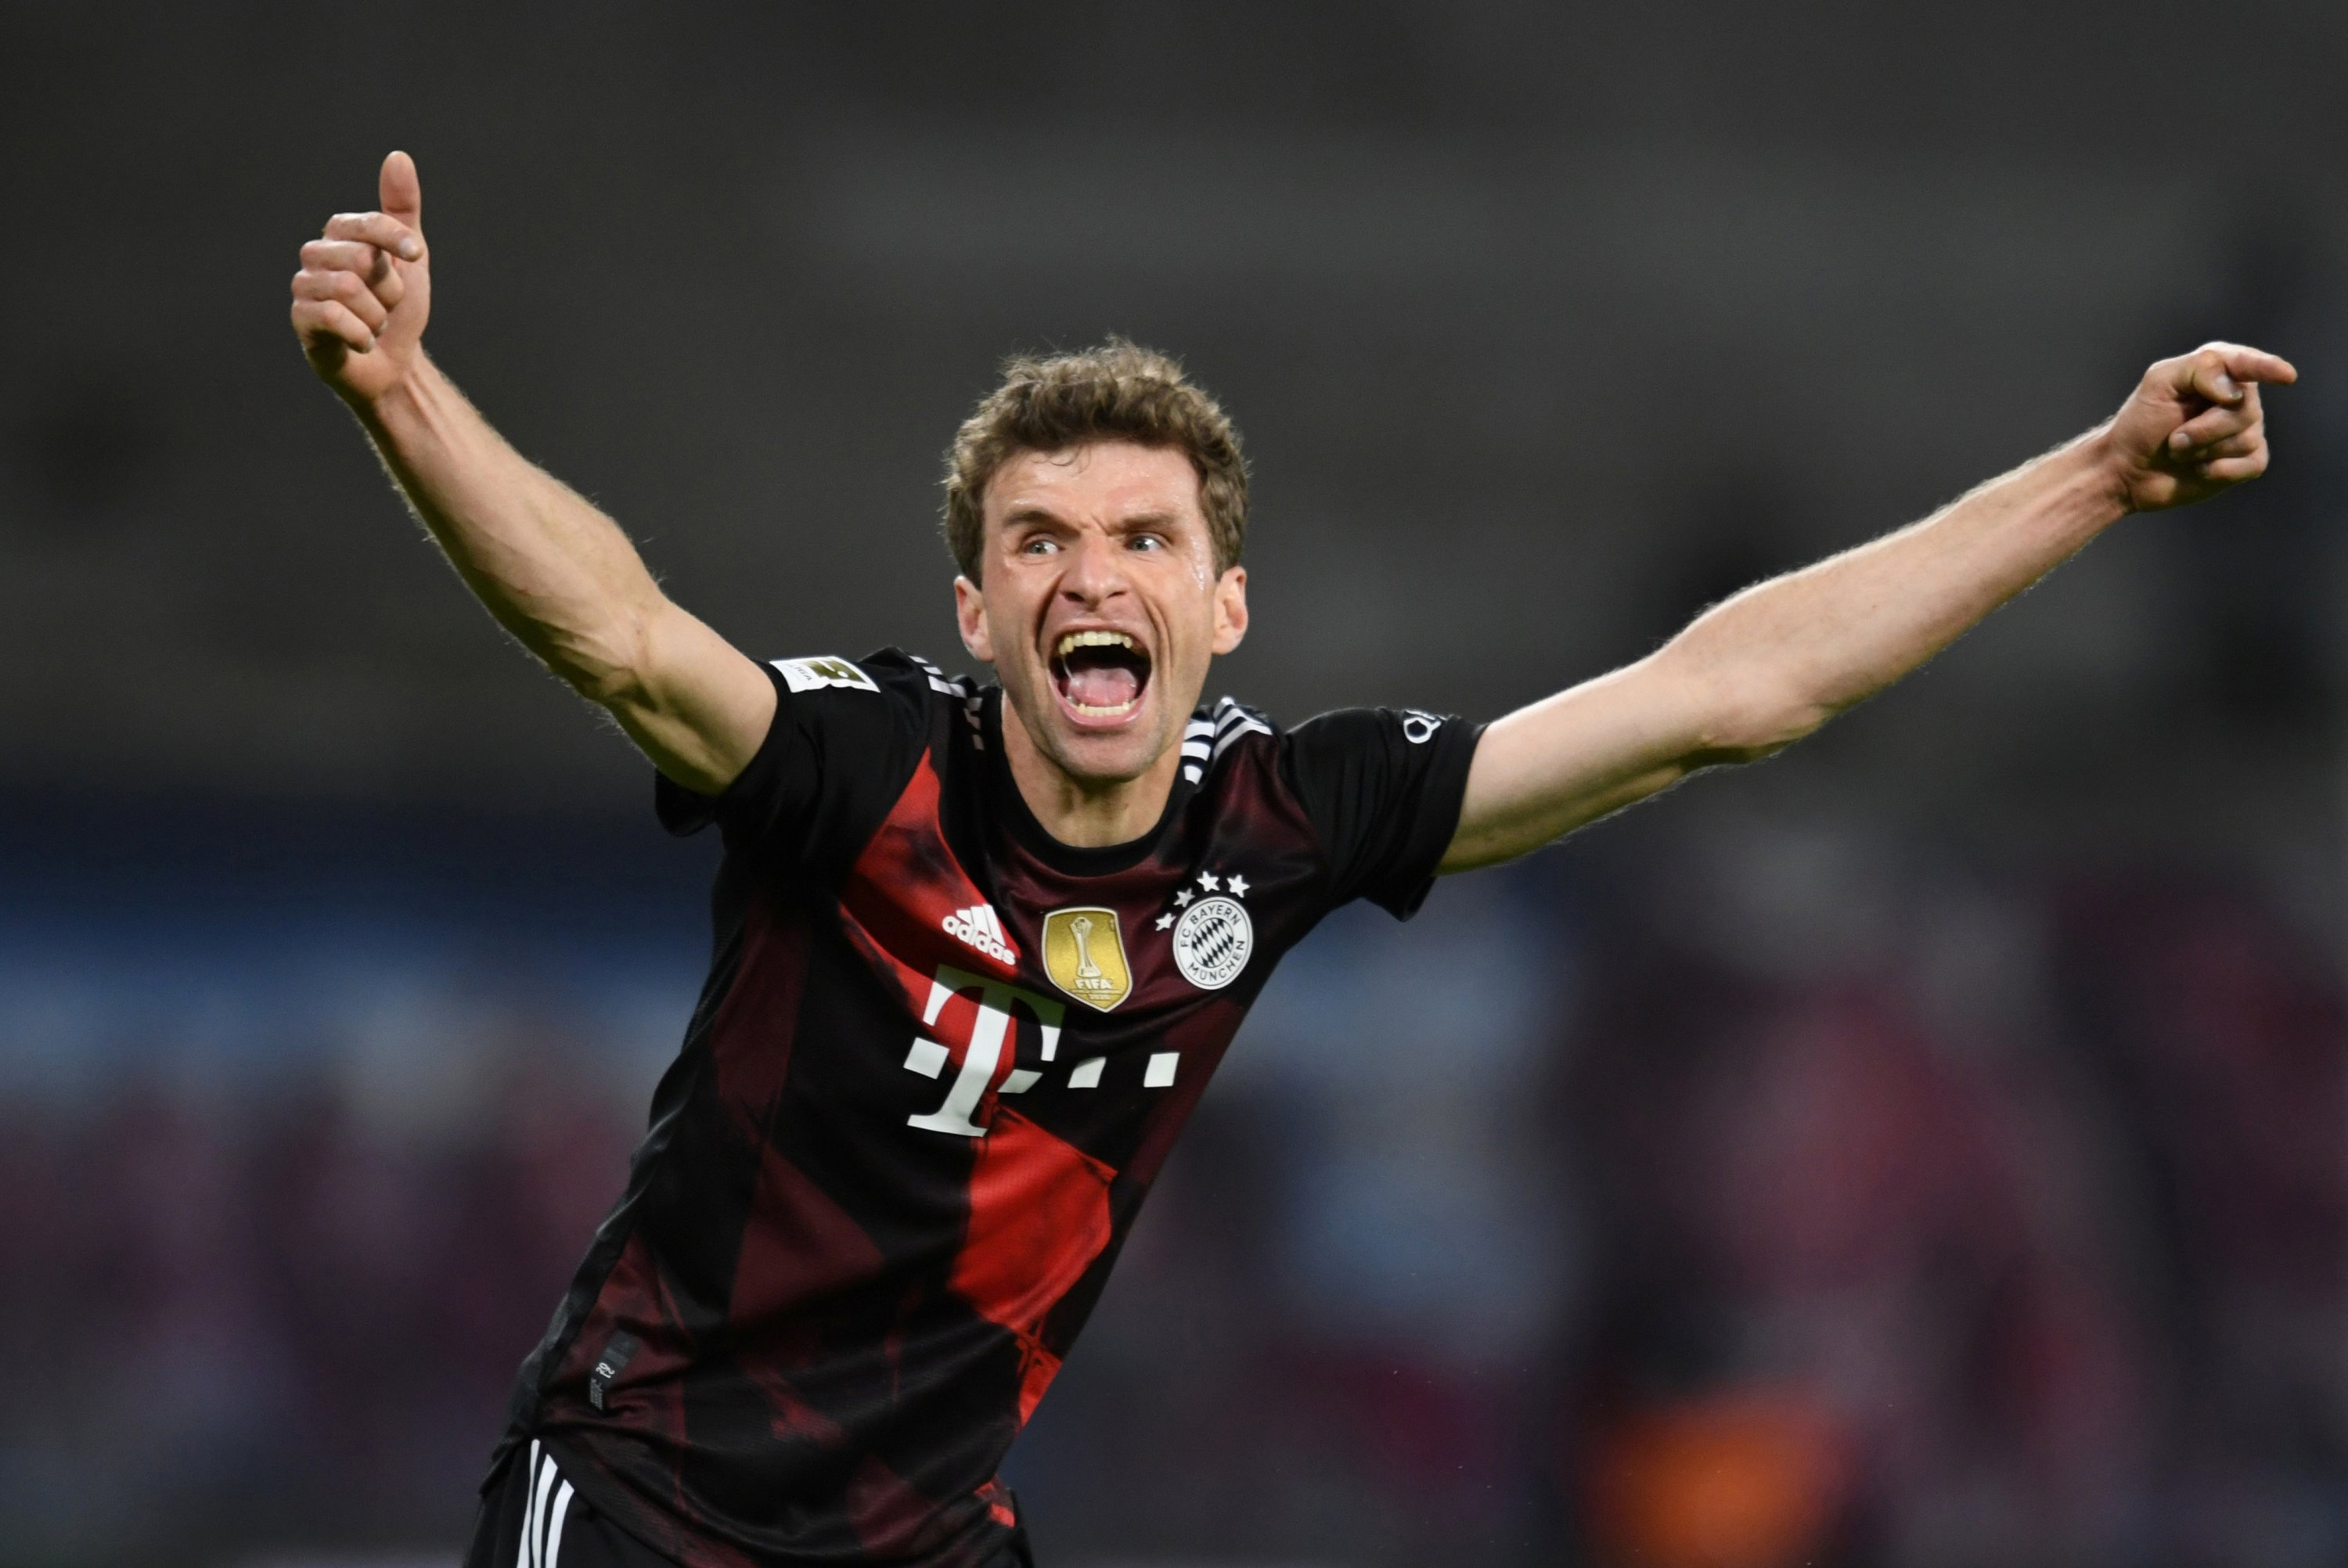 Bayern Munich's Thomas Muller reacts after Leon Goretzka's goal against RB Leipzig, Leipzig, Germany, April 03, 2021. (Annegret Hilse/Pool/DFL via Reuters)